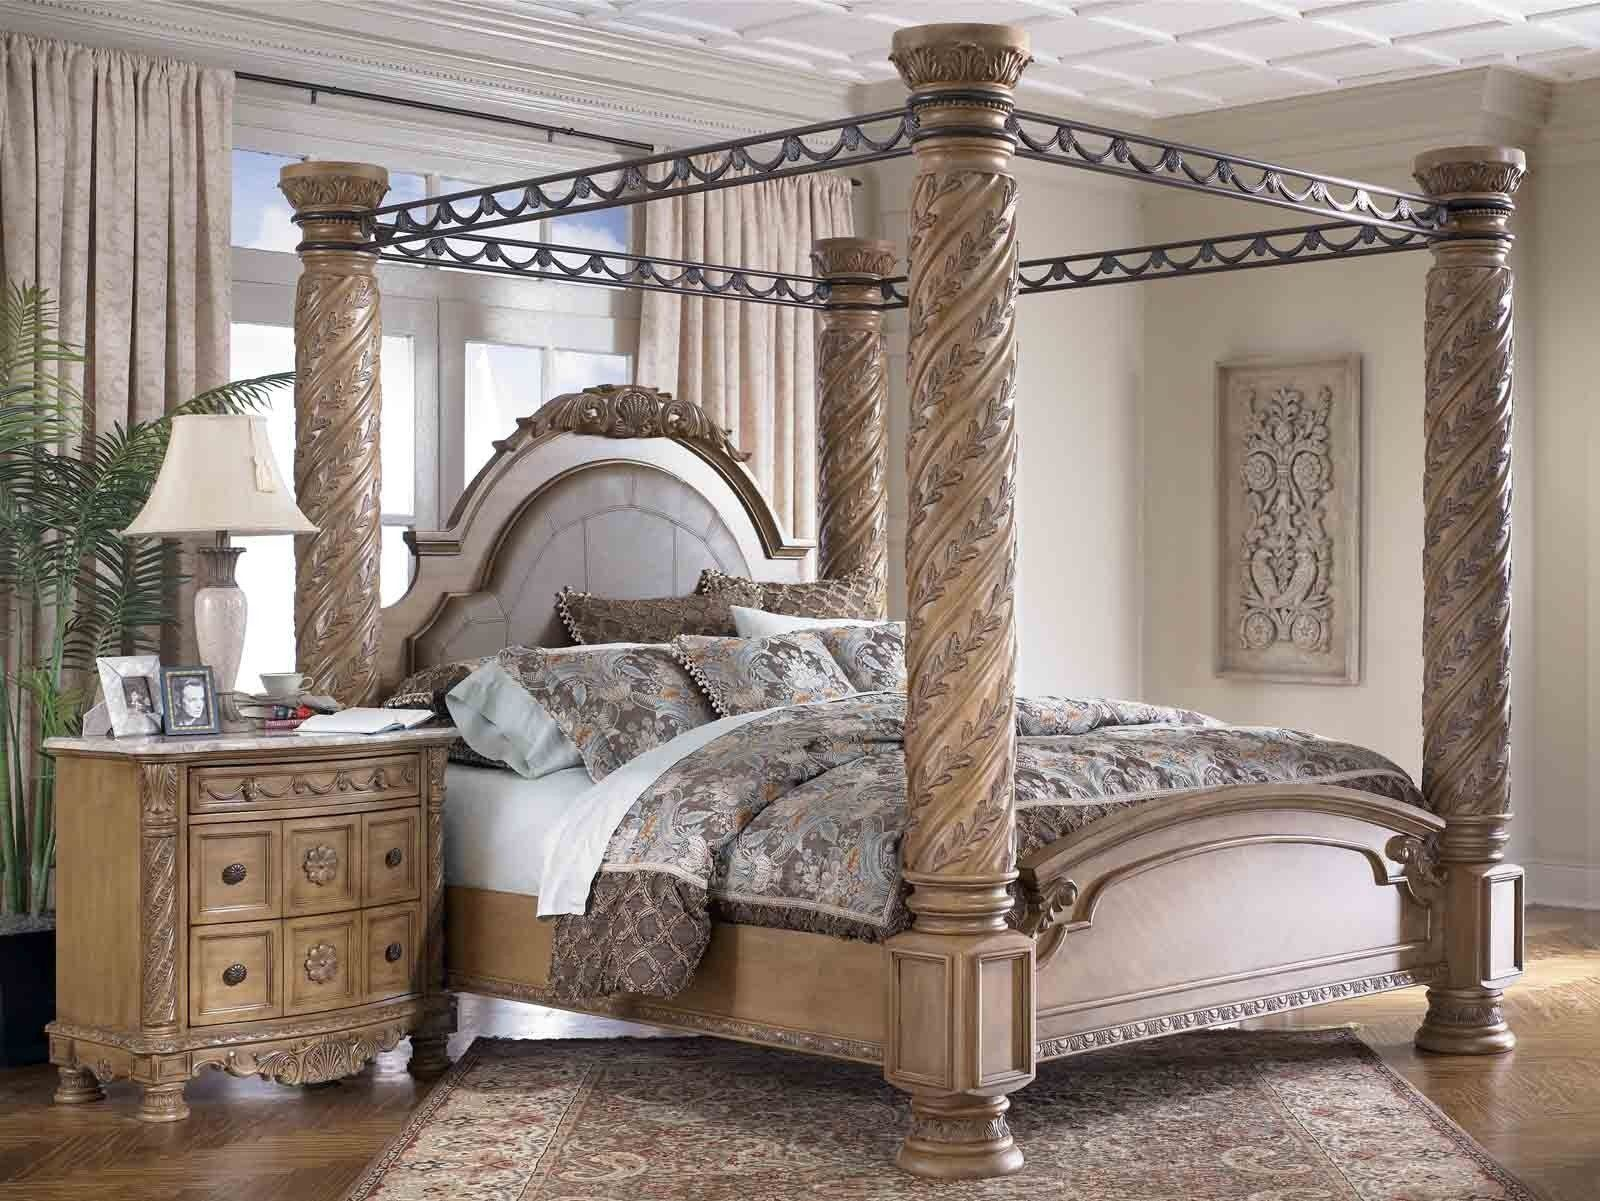 Best Bedding Romantic King Size Canopy Bed Frame Ideas Mooz The 400 x 300